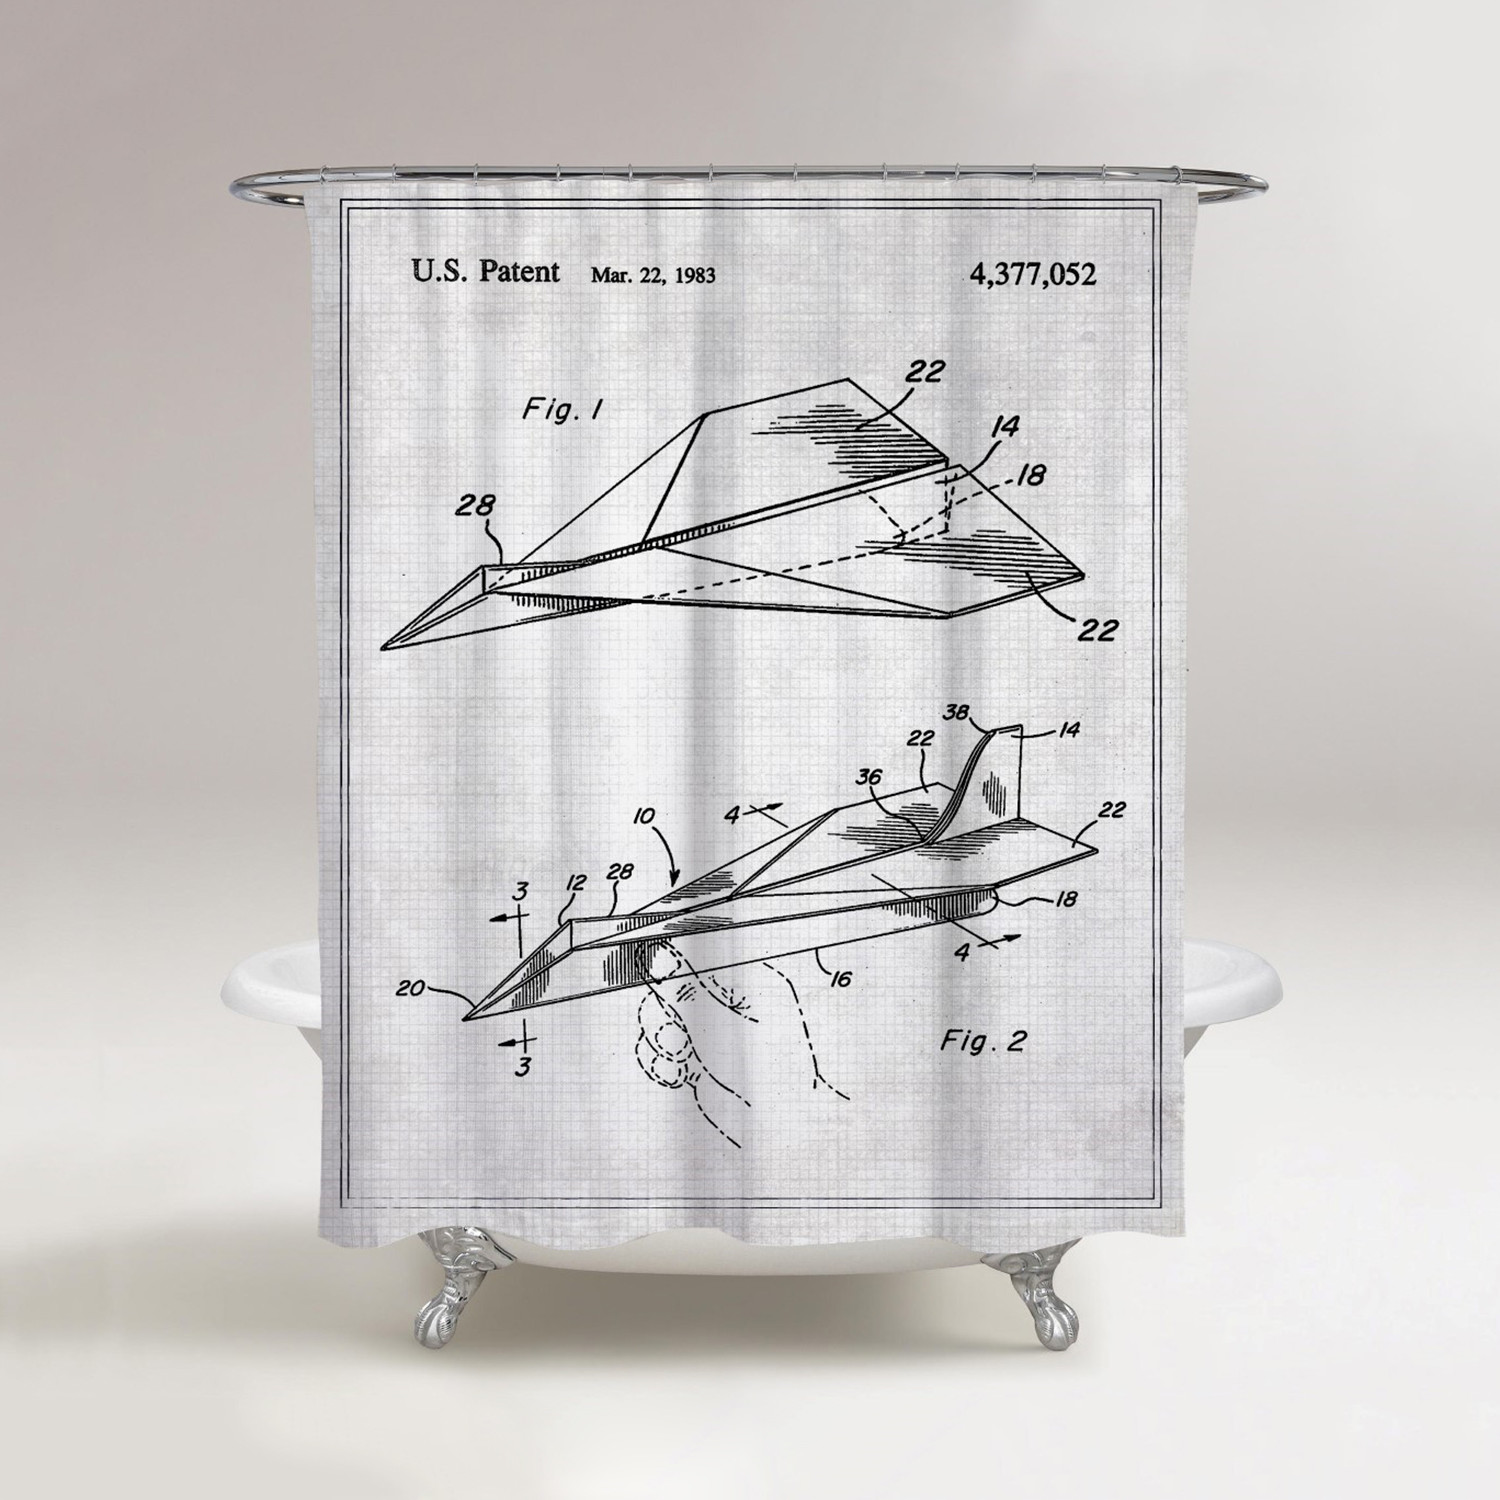 Folded Paper Airplane Shower Curtain 1983